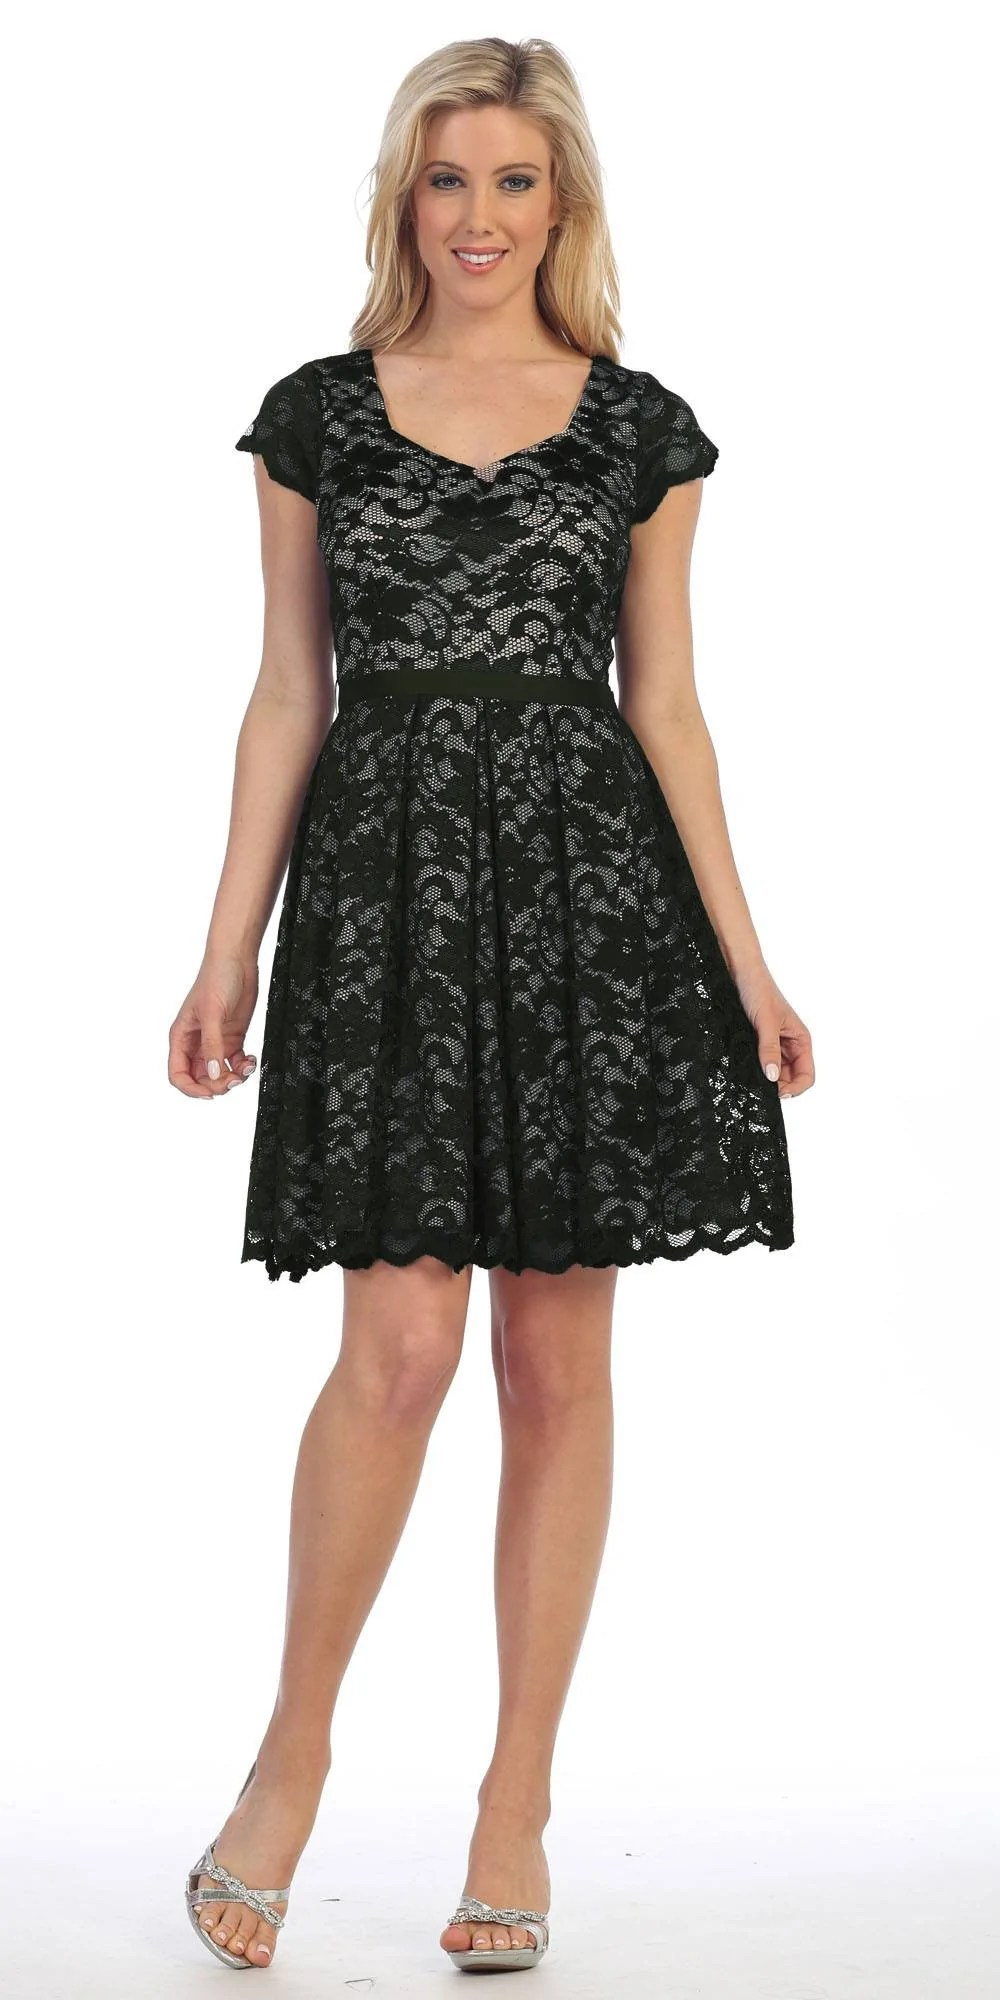 Short Knee Length Lace Dress with Sleeves